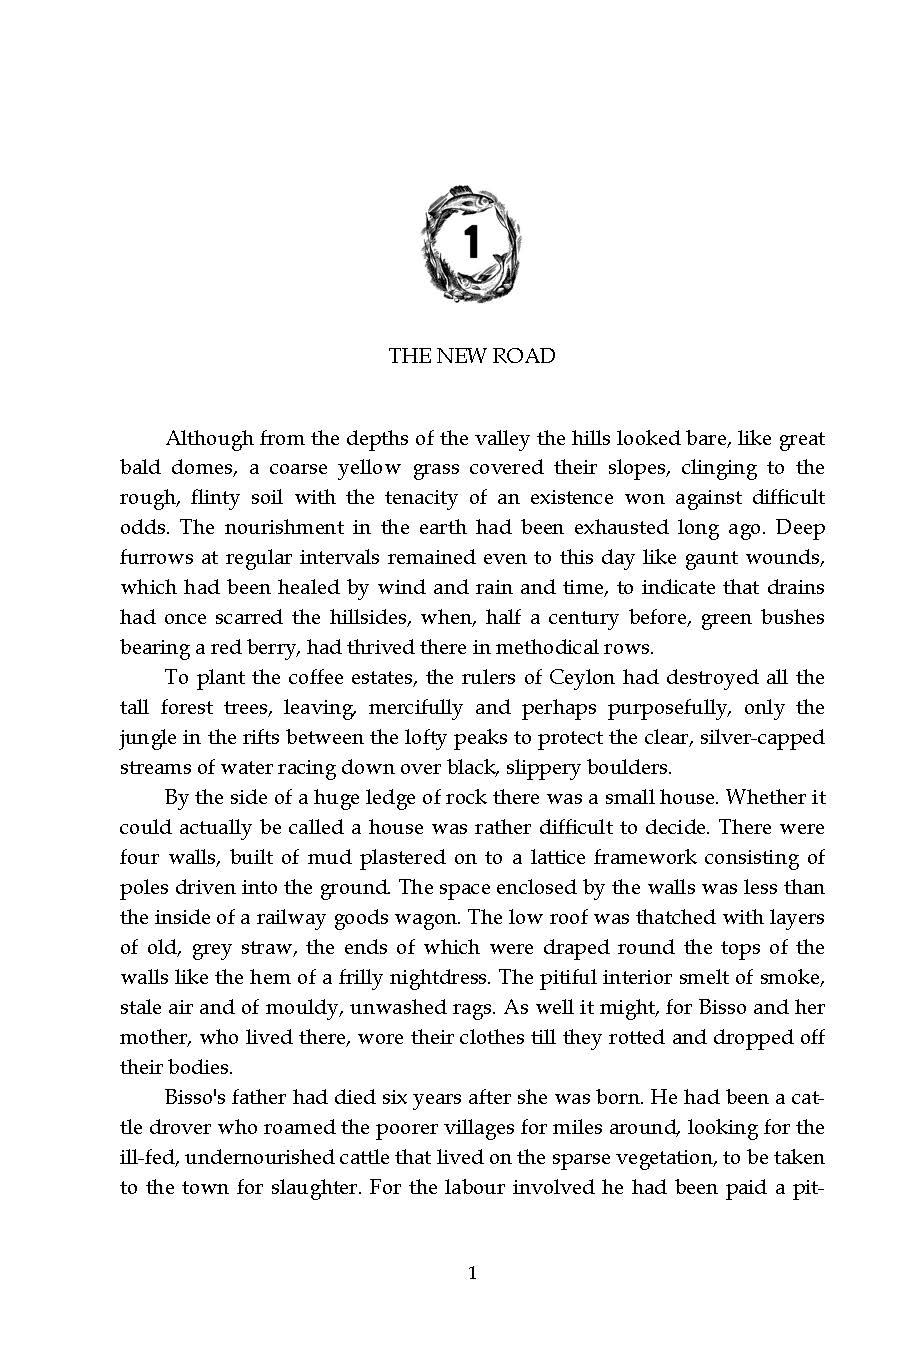 jgre050217 (final text)_Page_03.jpg